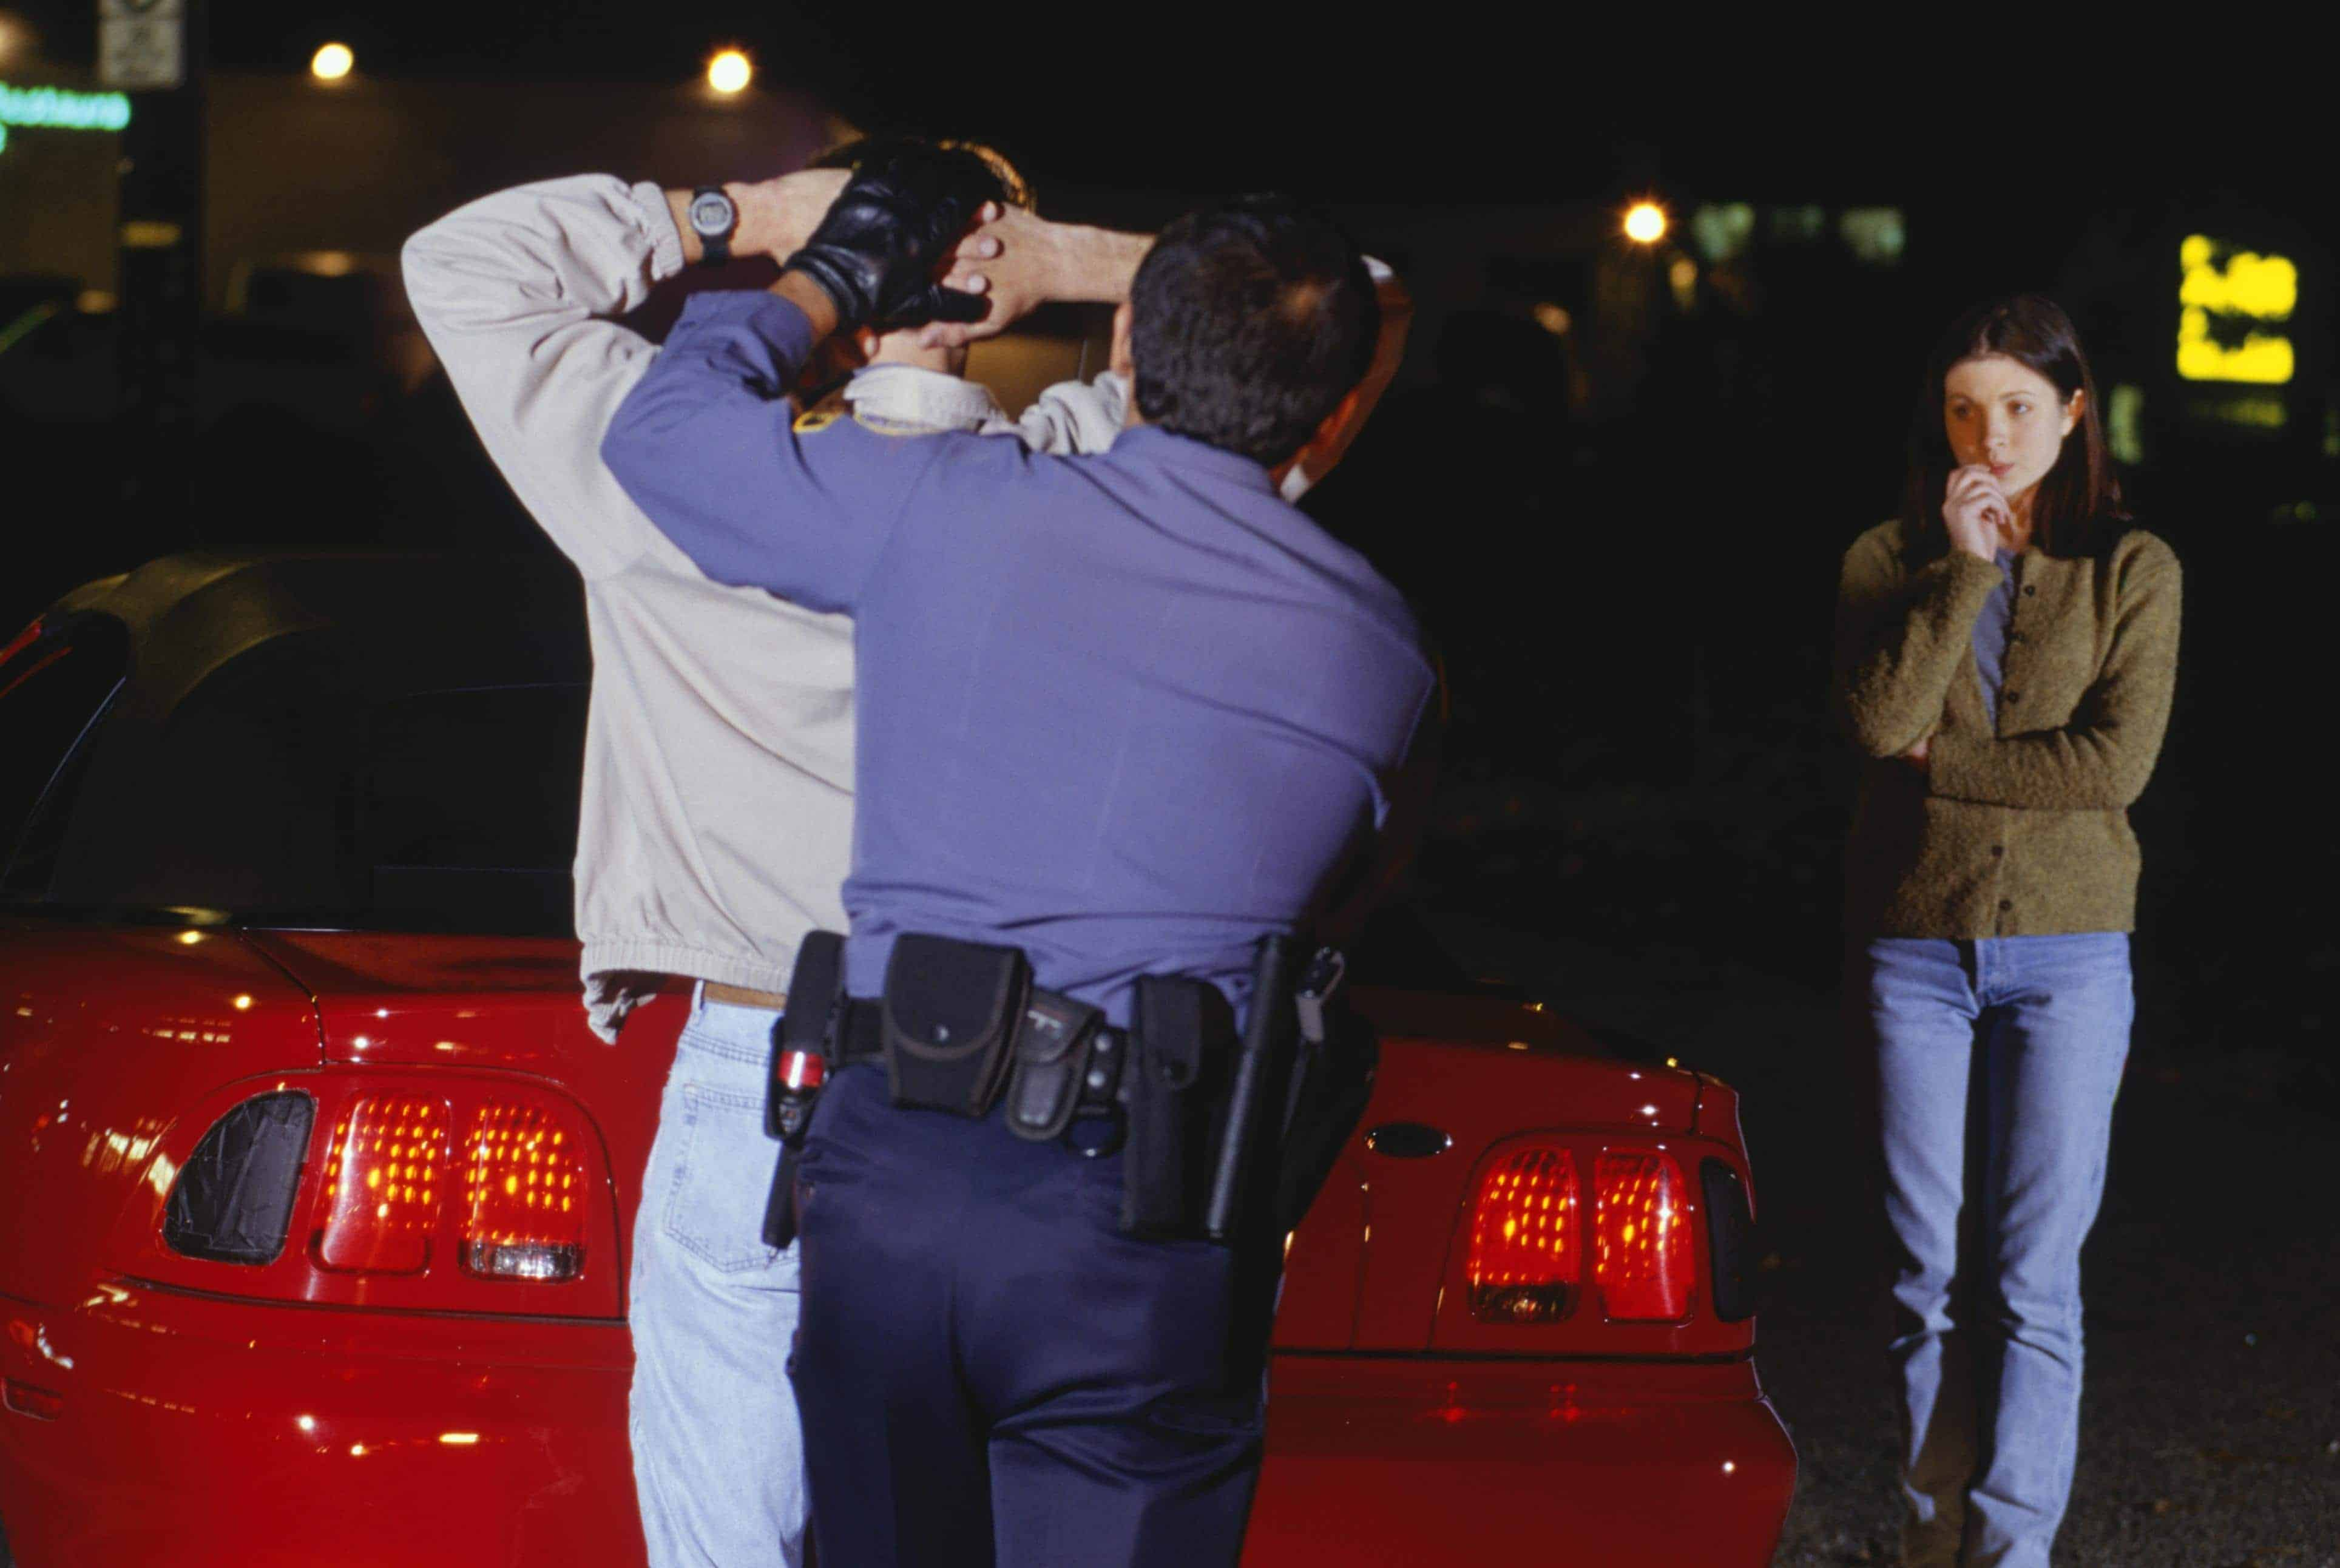 NJ DWI lawyer